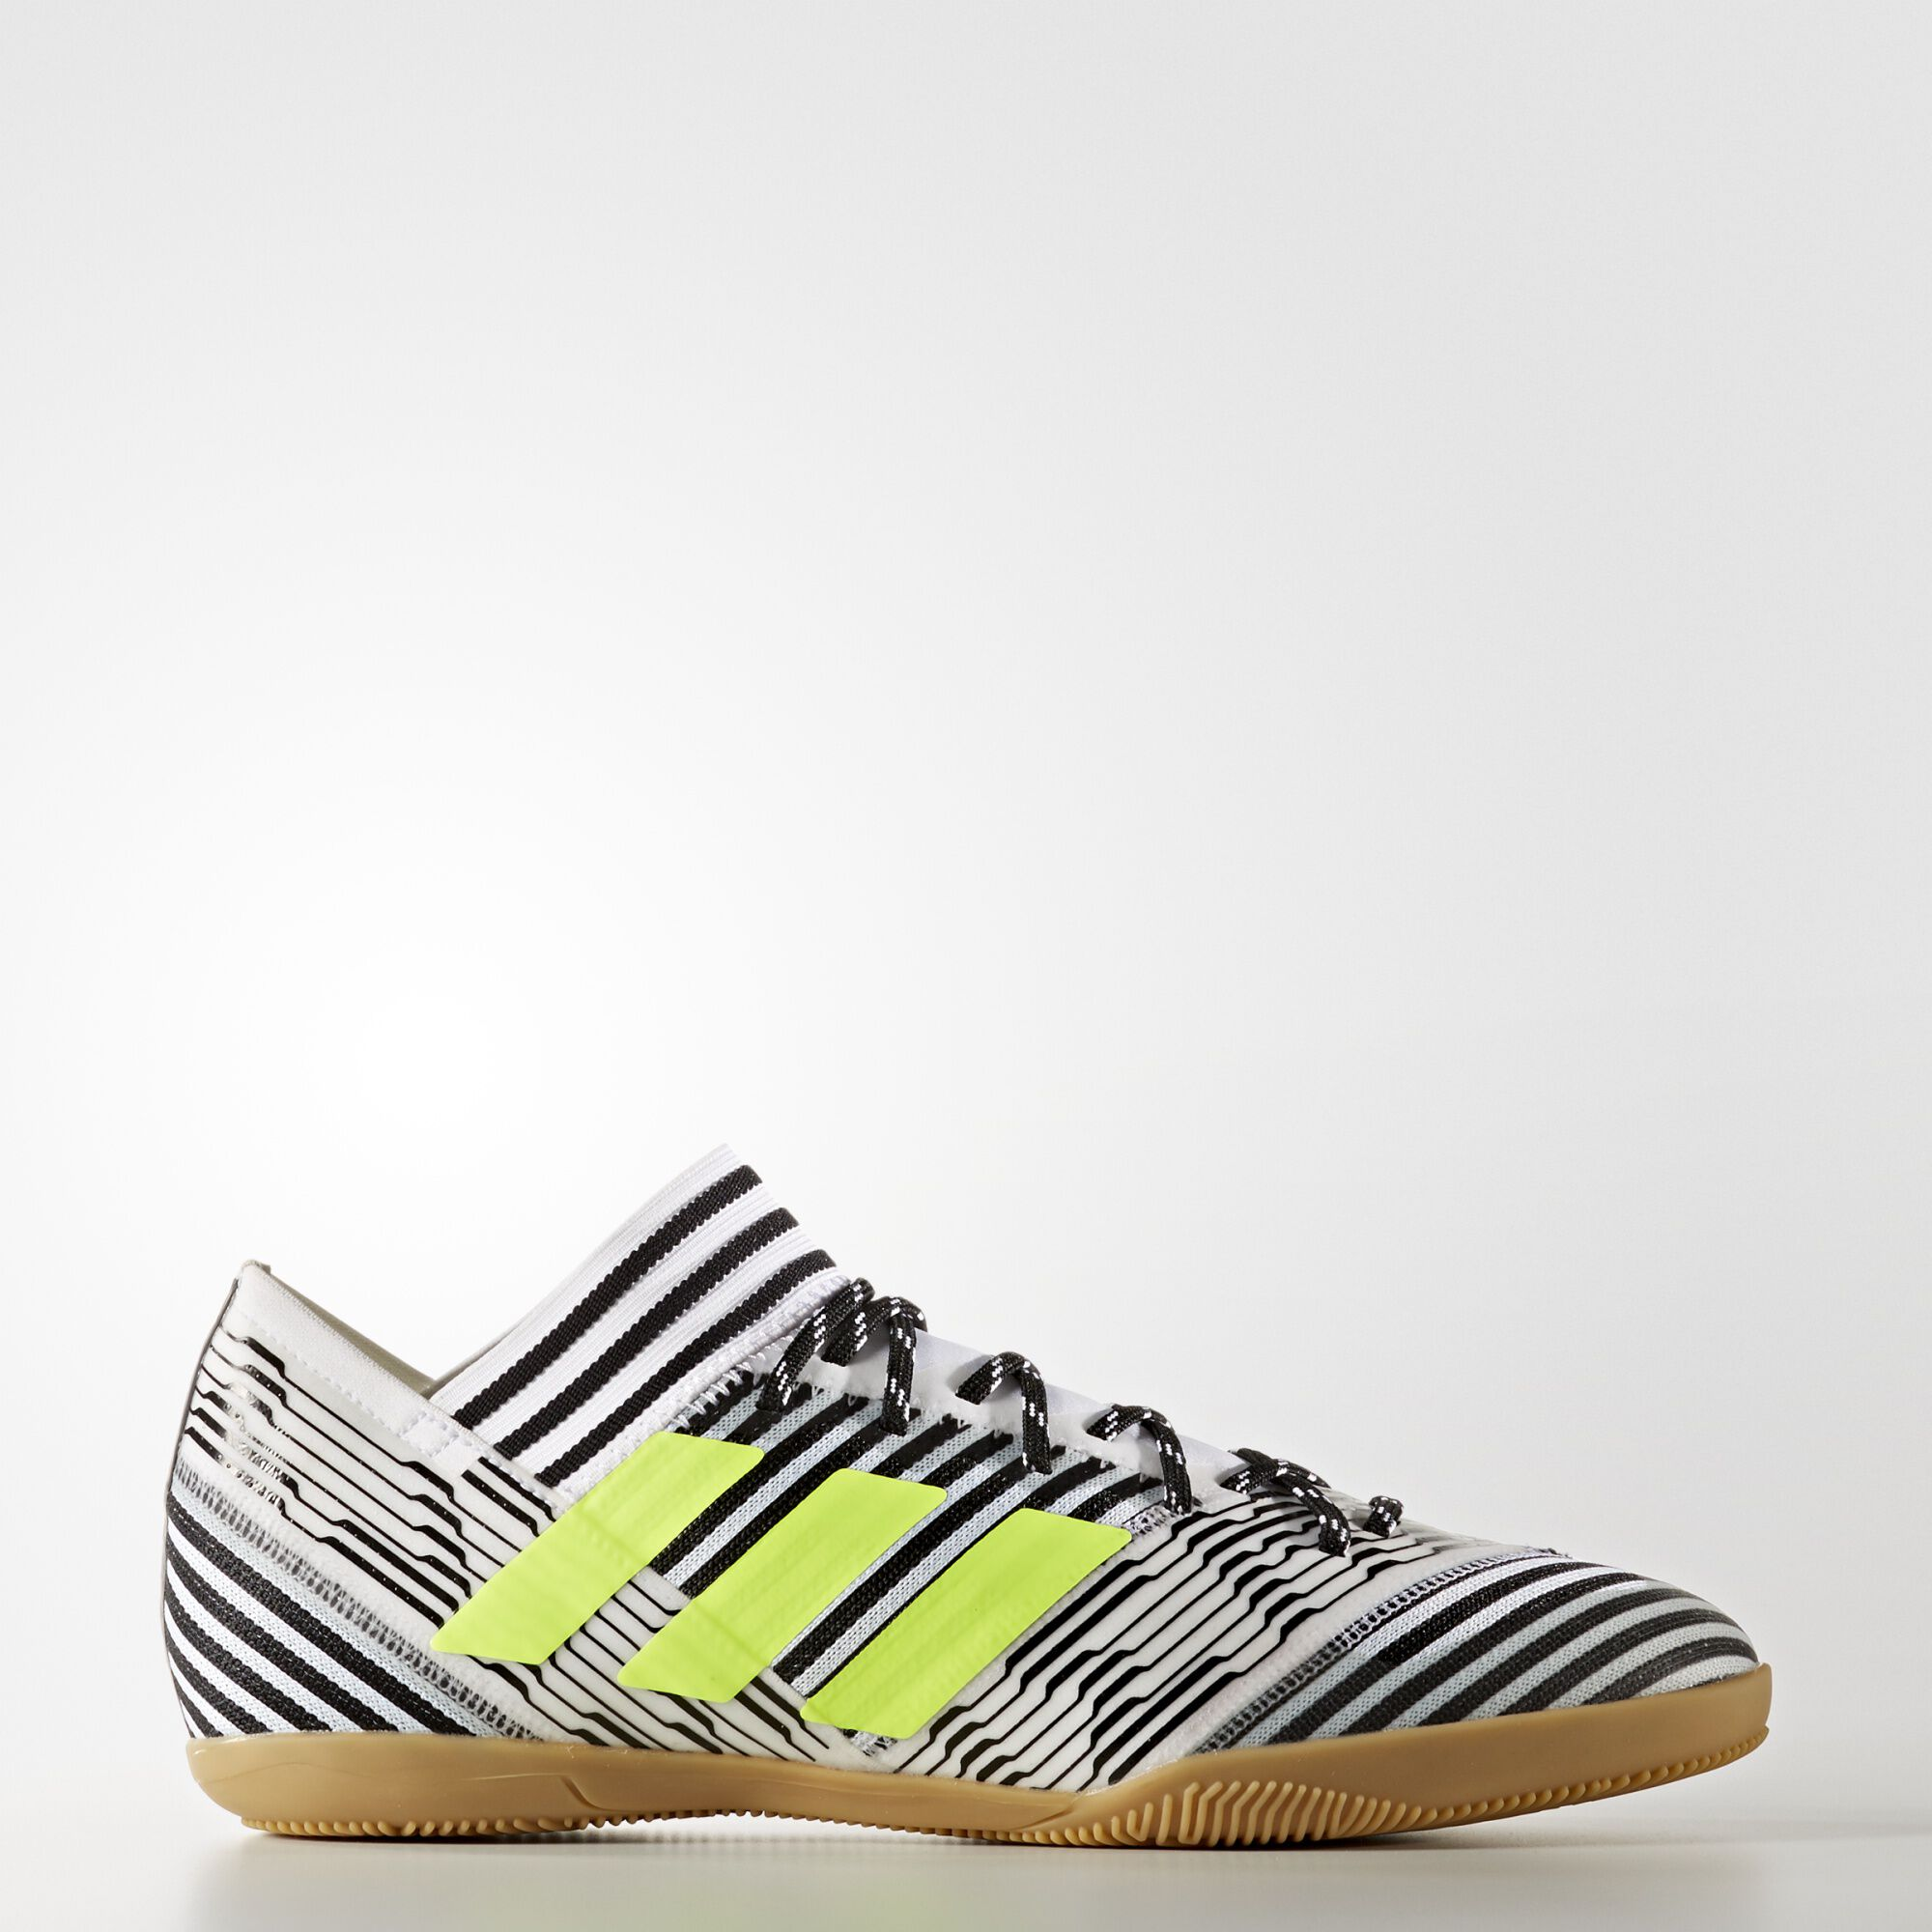 bded954291c9 Buy adidas football shoes   OFF76% Discounted